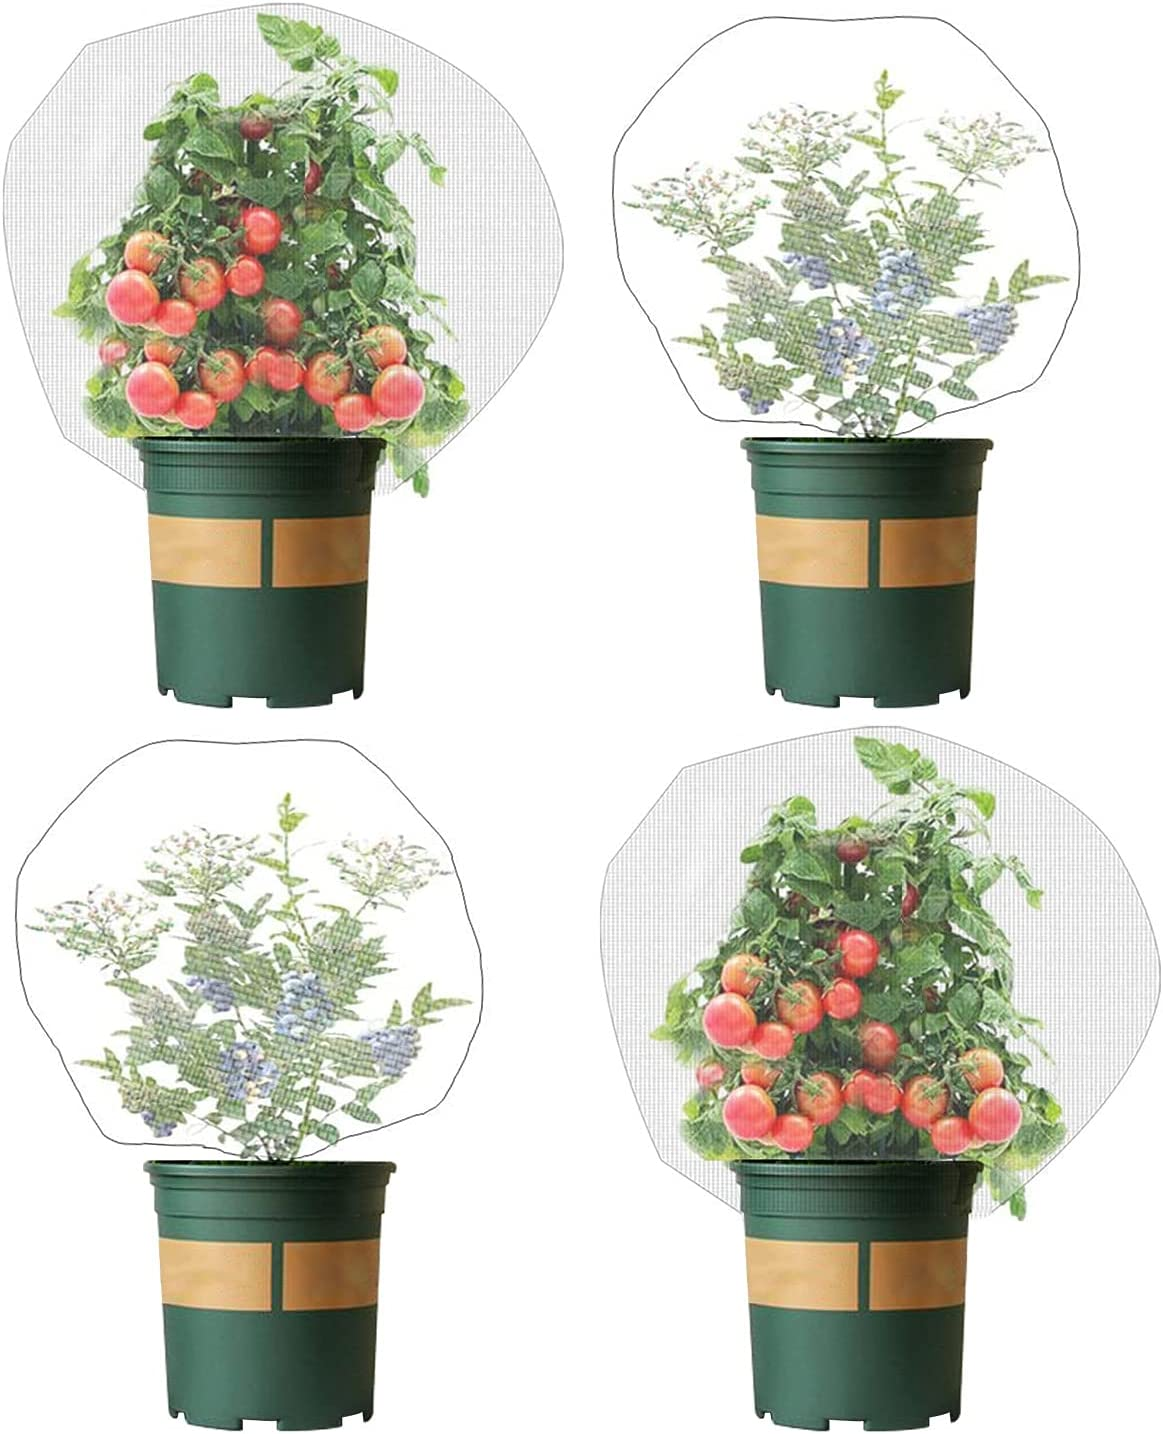 4 Pack Garden Neting Plant Insect Bird Barrier Mesh with Drawstring 3.5Ftx2.3Ft Mesh Plant Covers Freeze Protection Tomato Barrier Bag for Garden Flower Blueberry Vegetables Fruits Bird Eating